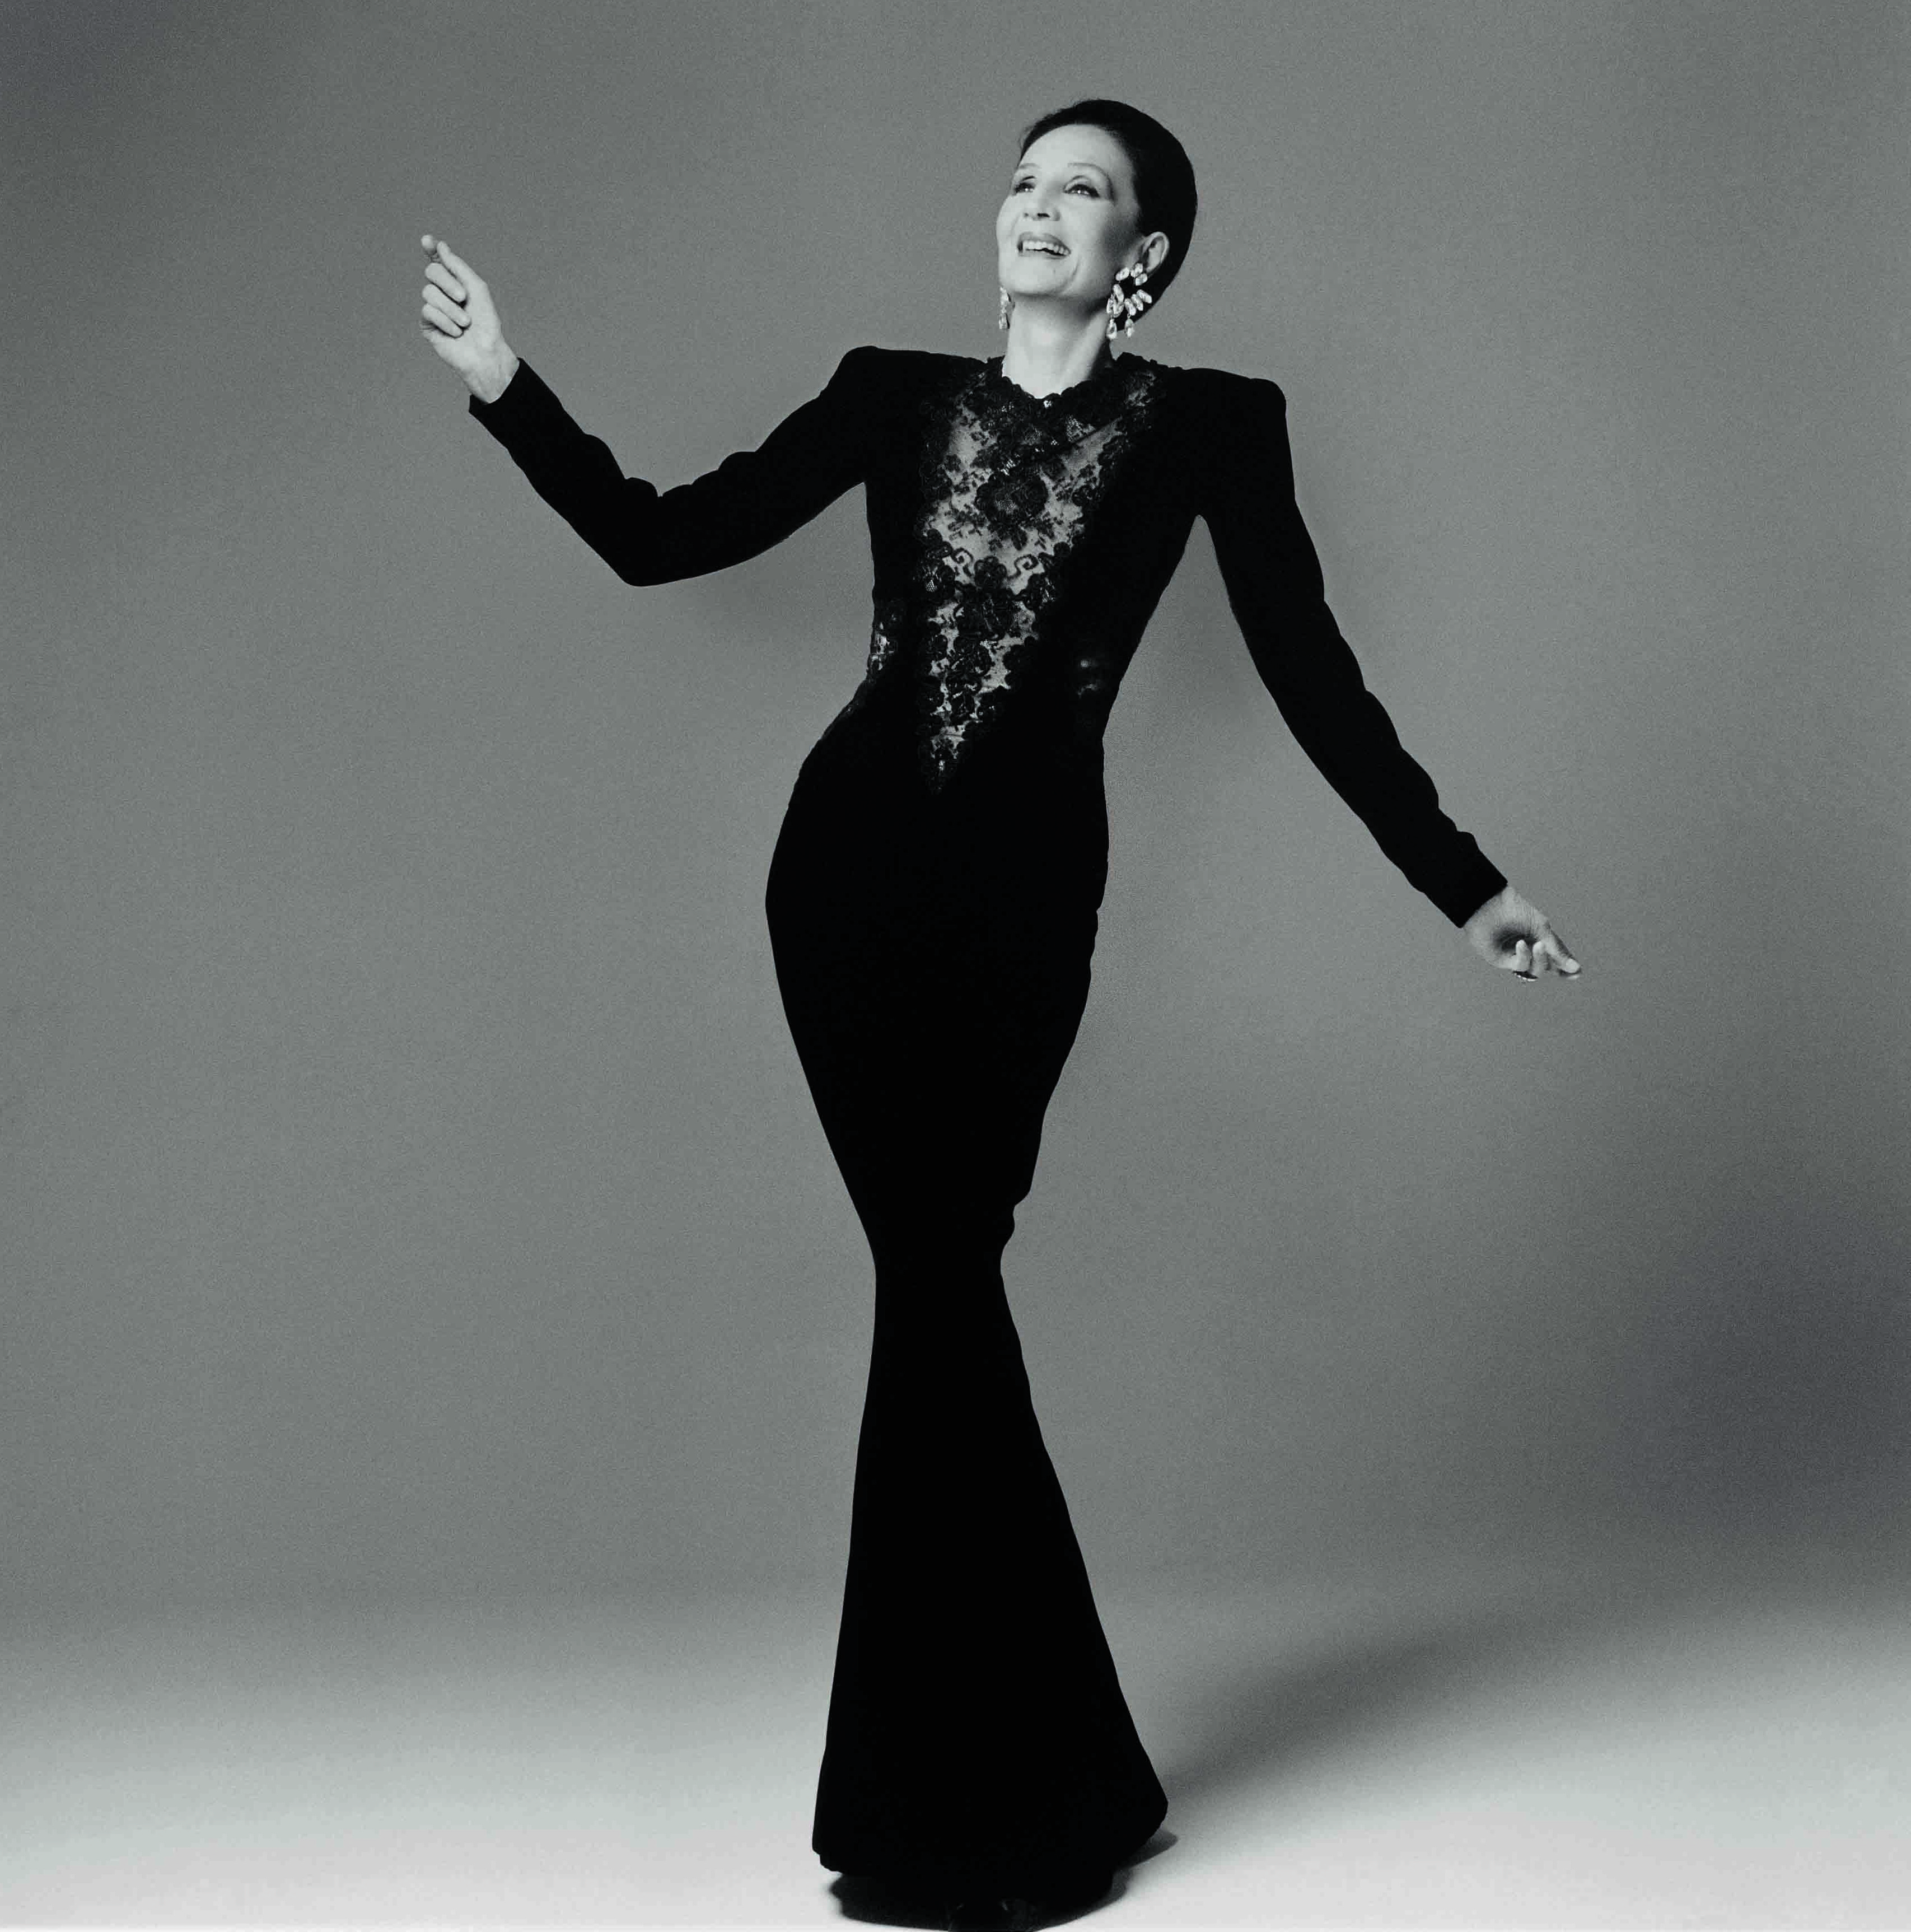 Jacqueline de Ribes in her own design, 1986. Courtesy of The Metropolitan Museum of Art, Photograph by Francesco Scavullo,